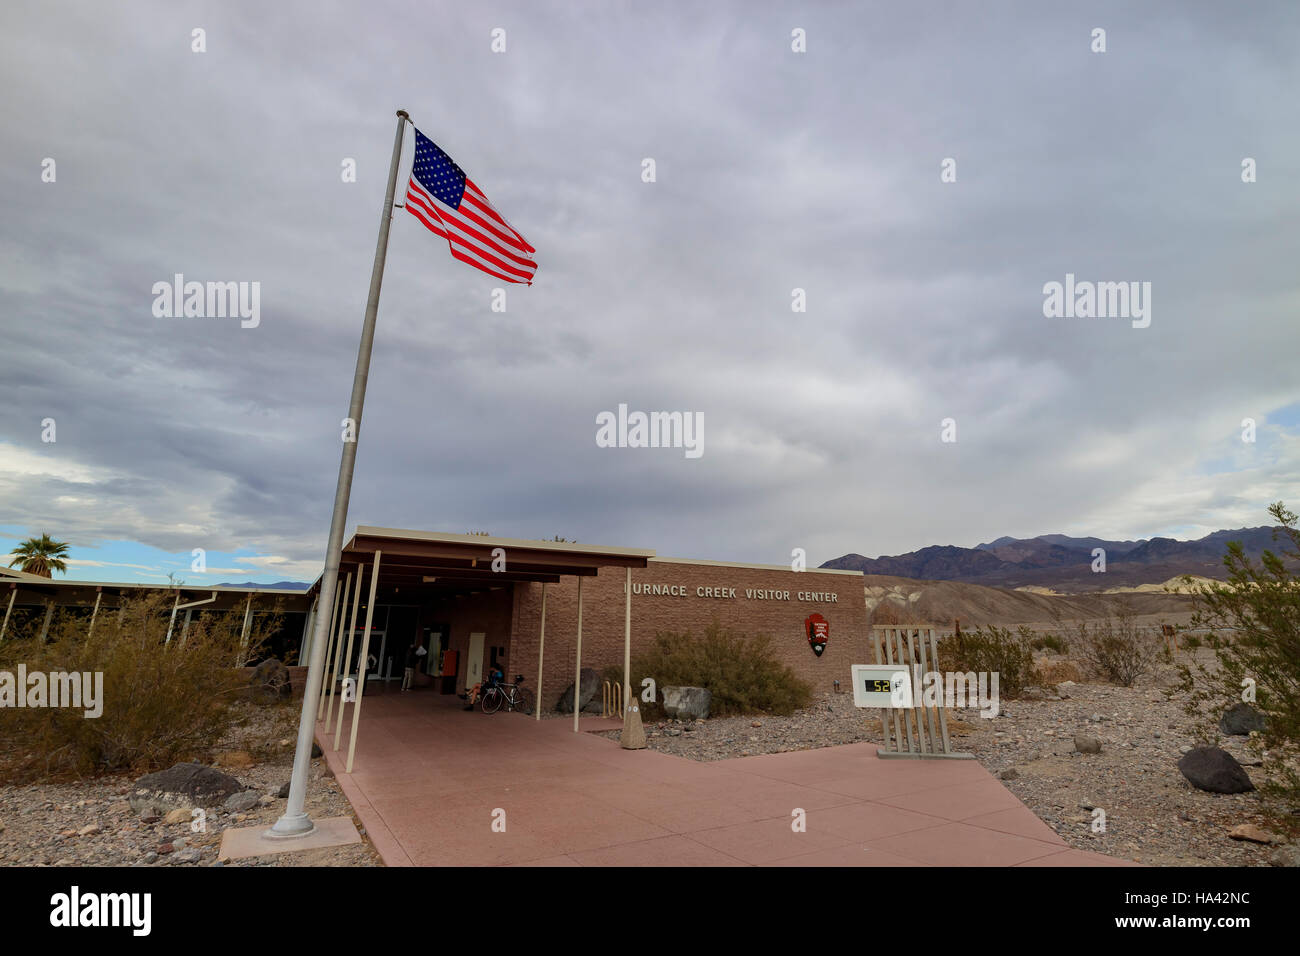 The famous visitor center at Death Valley National Park, California - Stock Image